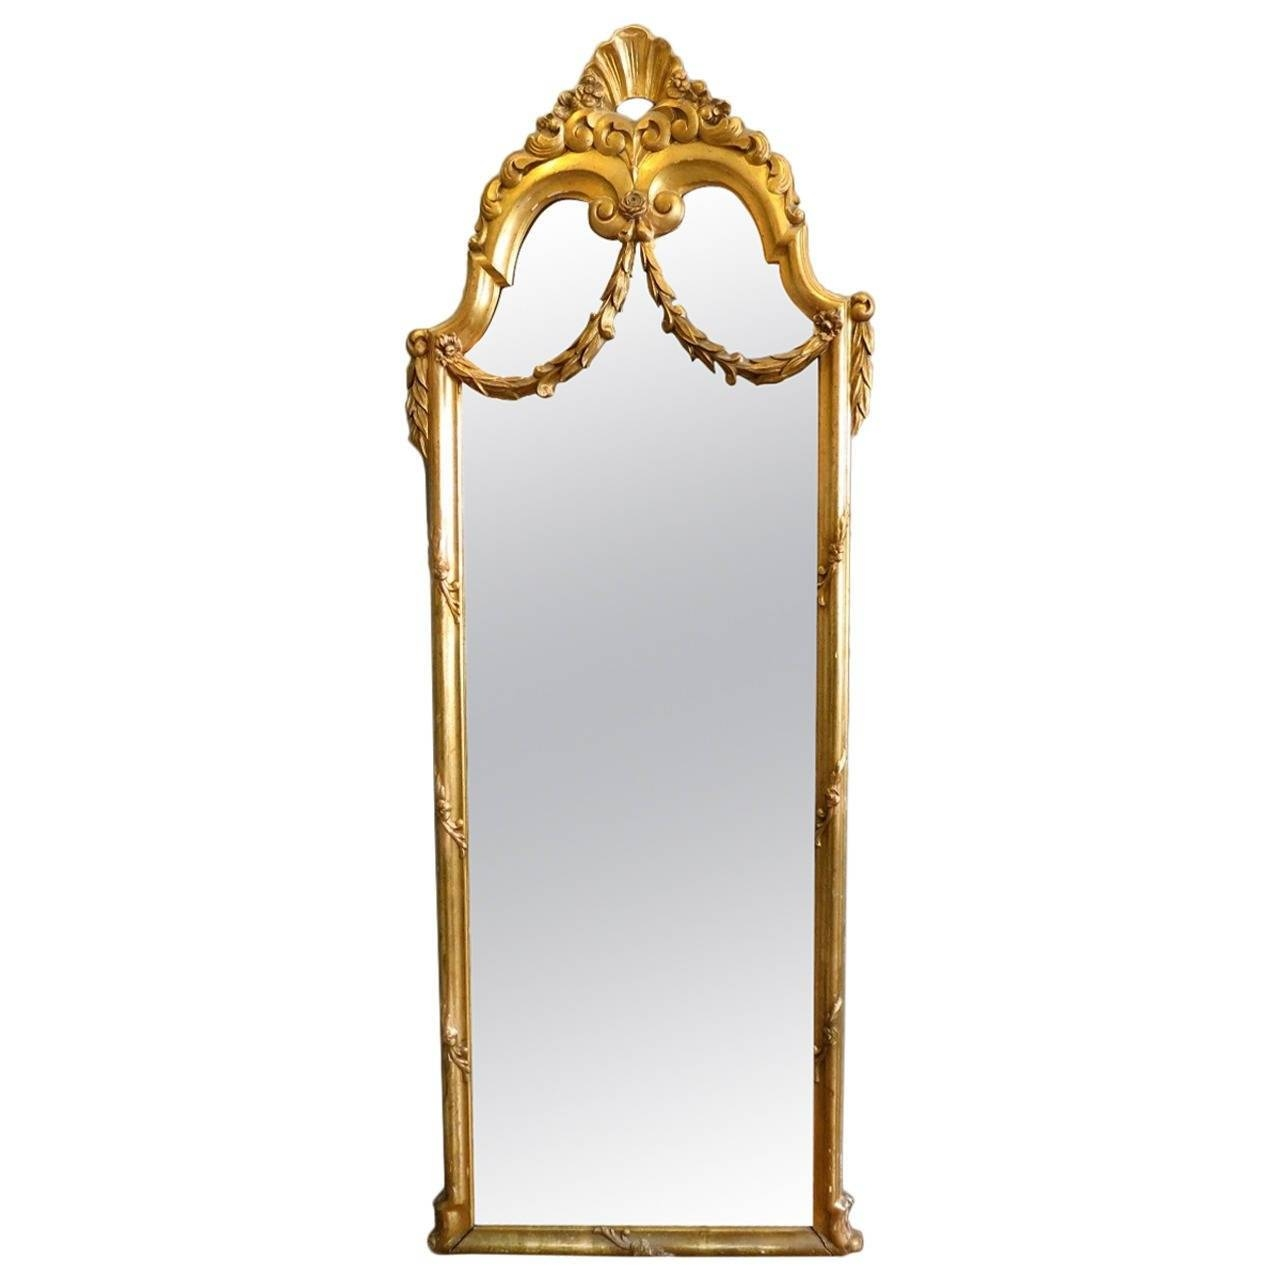 Antique French Gold Gilt Floor Standing Mirror At 1Stdibs within Gold Arch Mirrors (Image 3 of 25)